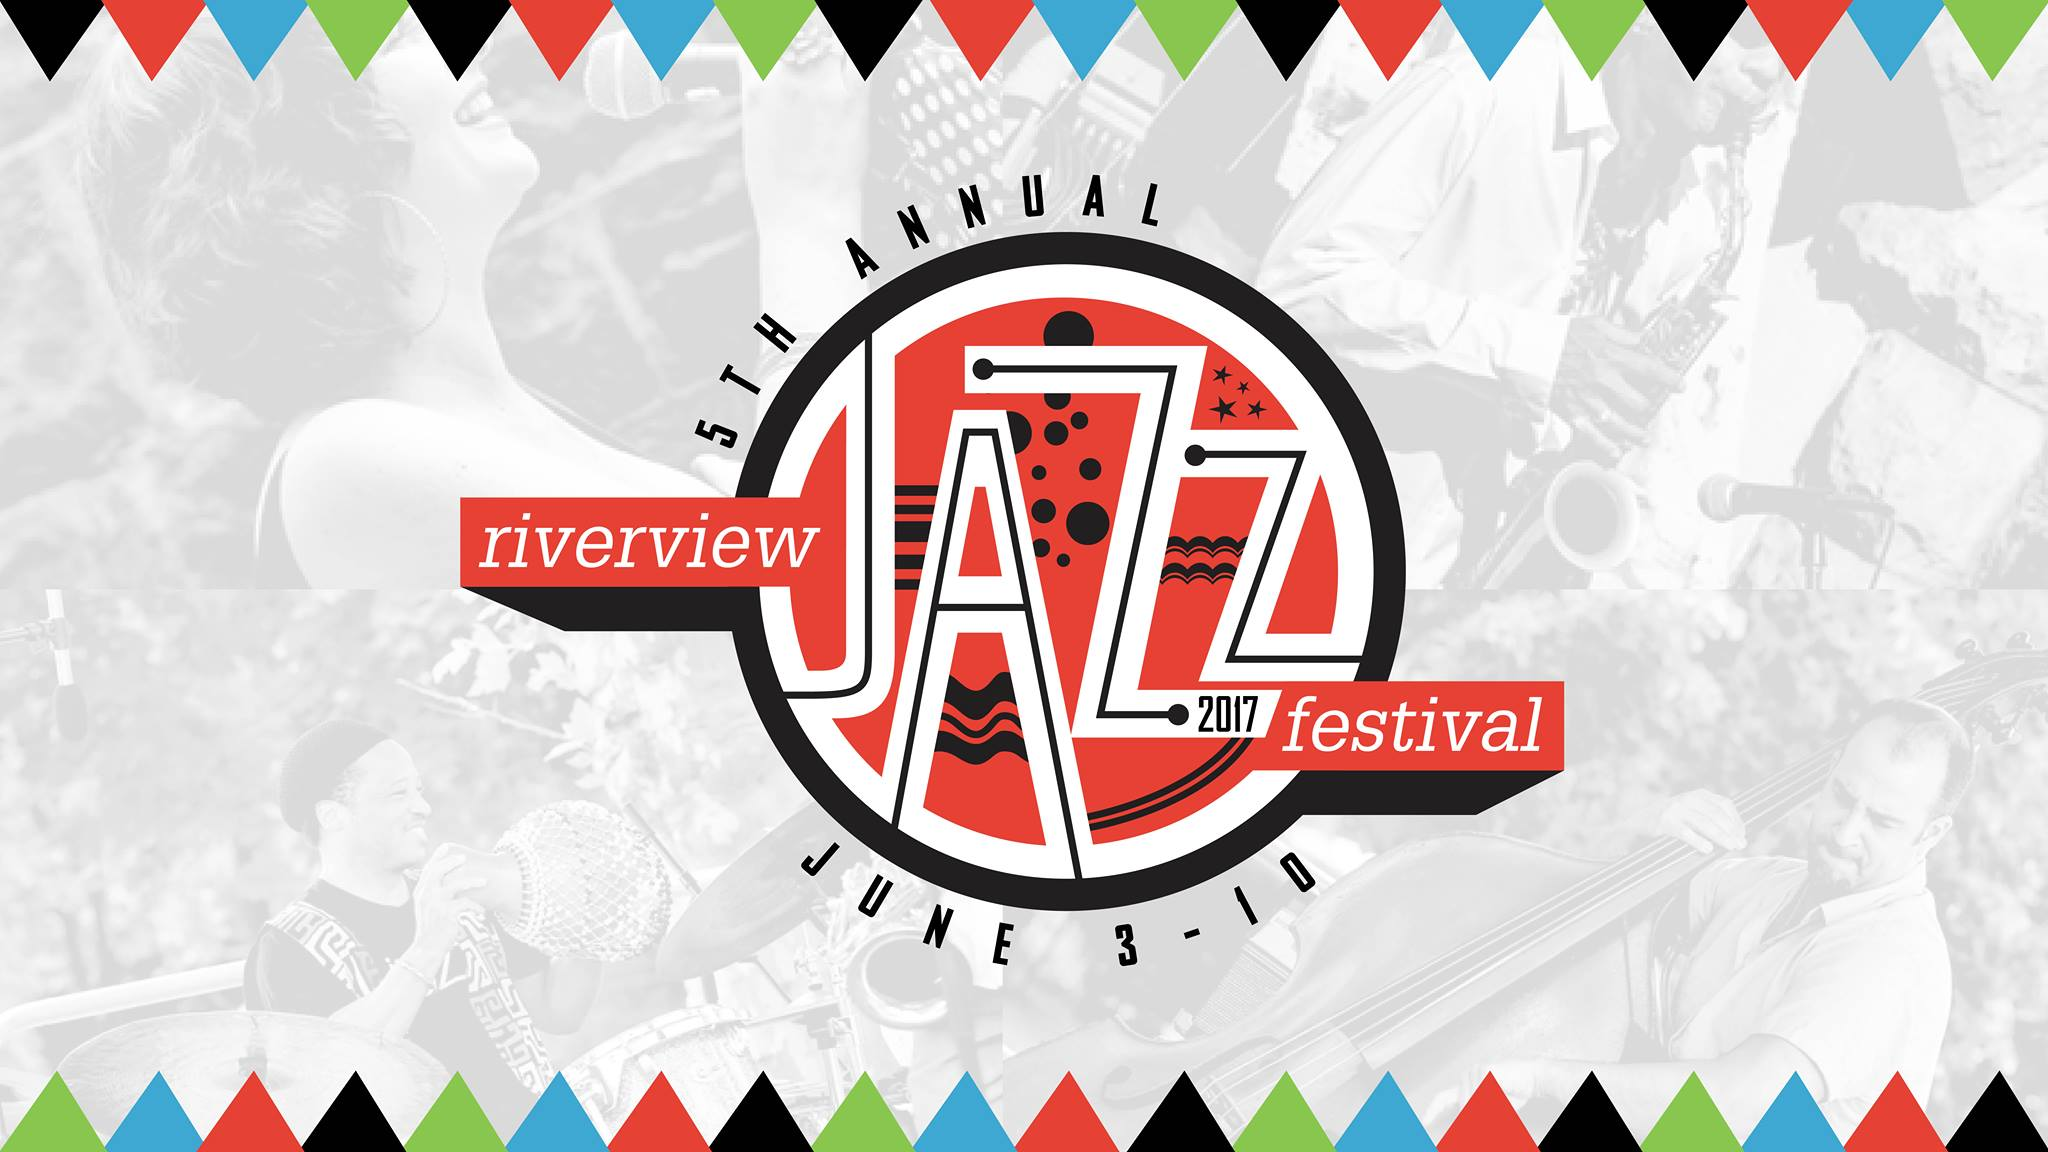 Riverview Jazz Festival 2017 [Saturday, June 3]